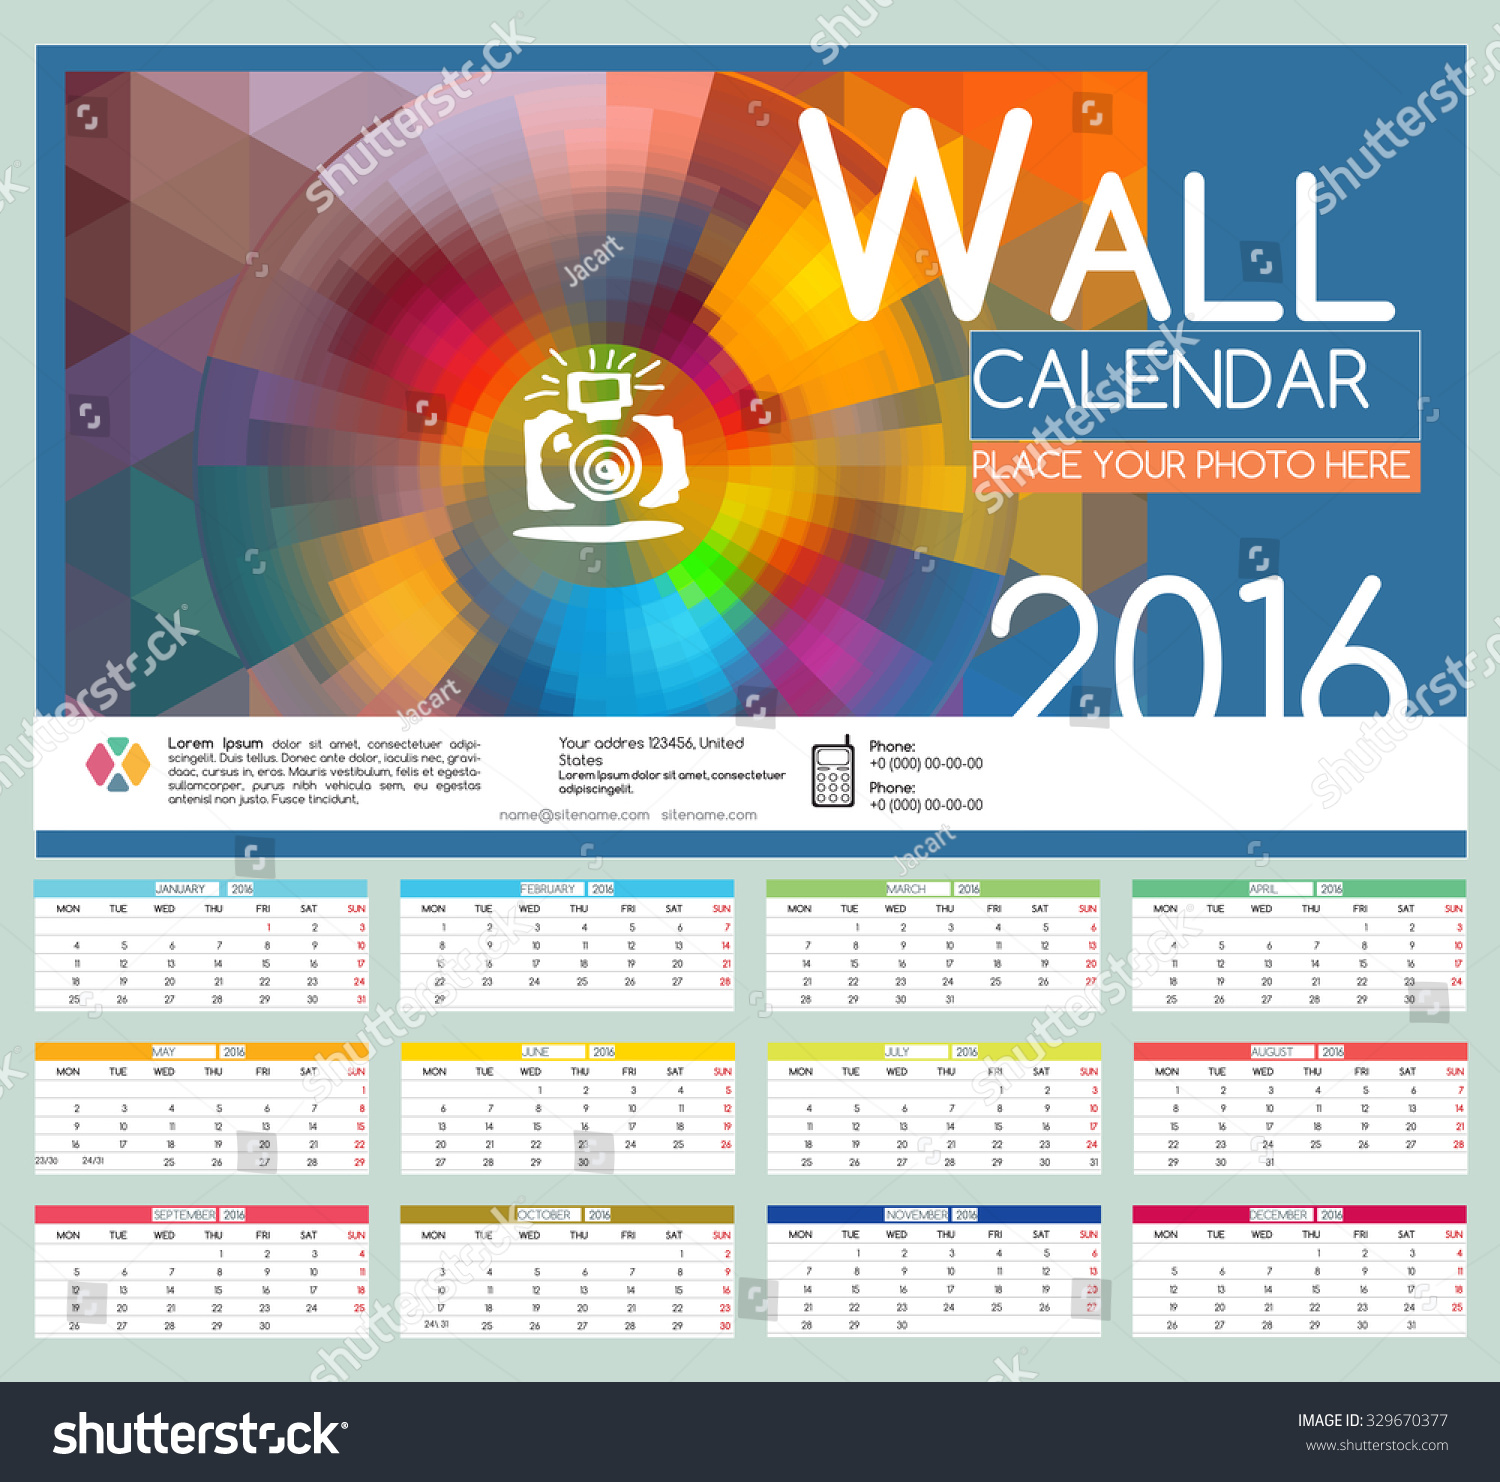 wall calendar design xmas. Black Bedroom Furniture Sets. Home Design Ideas